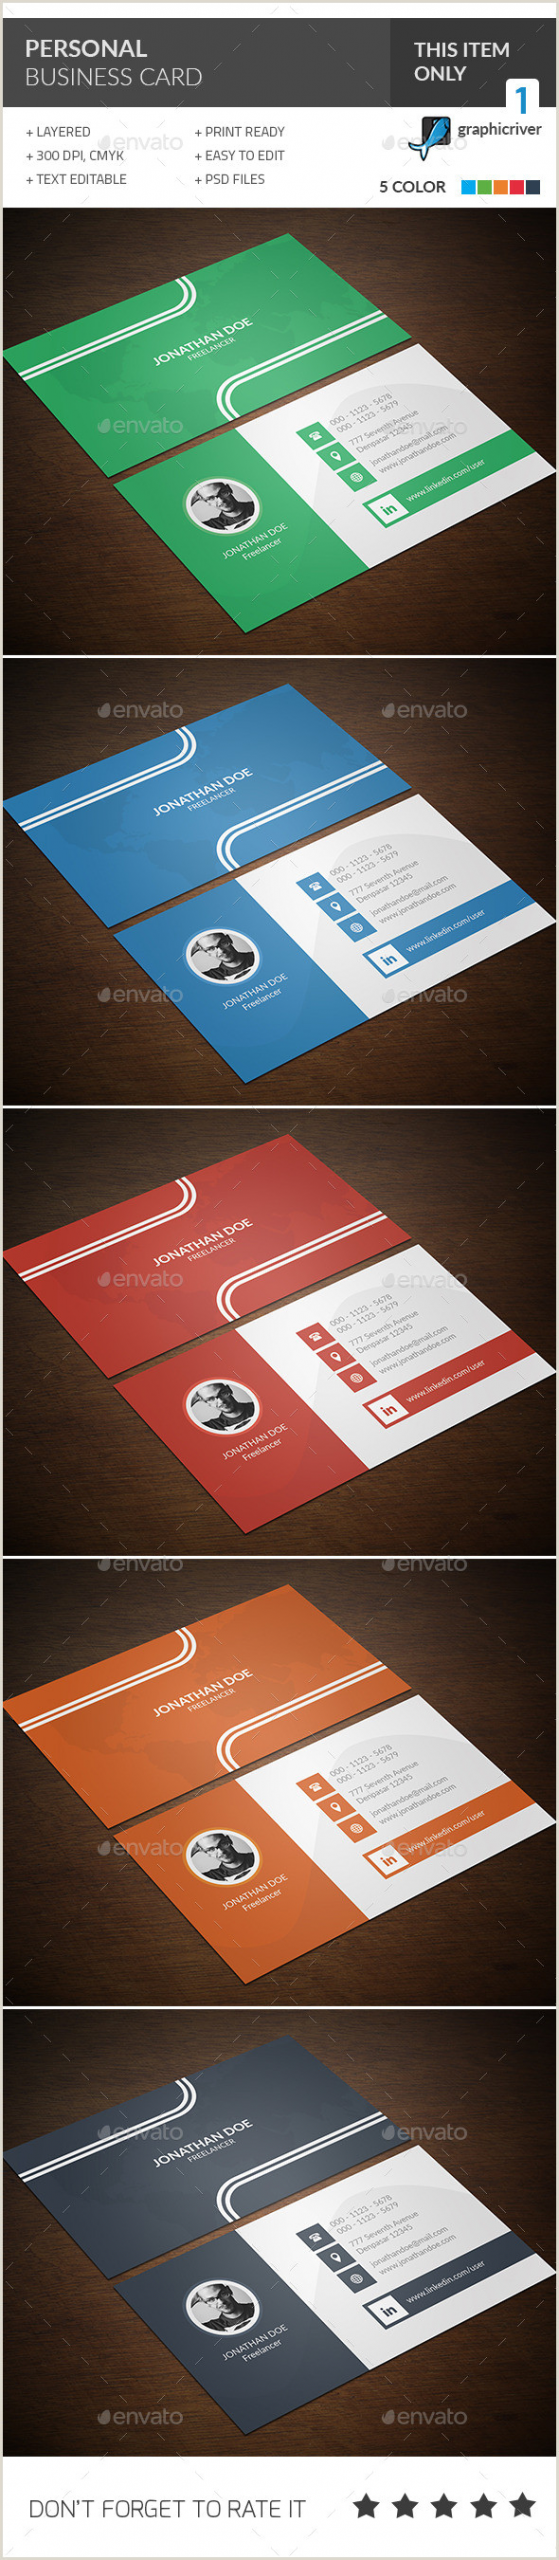 Personal Business Cards Online Personal Business Card Templates & Designs From Graphicriver